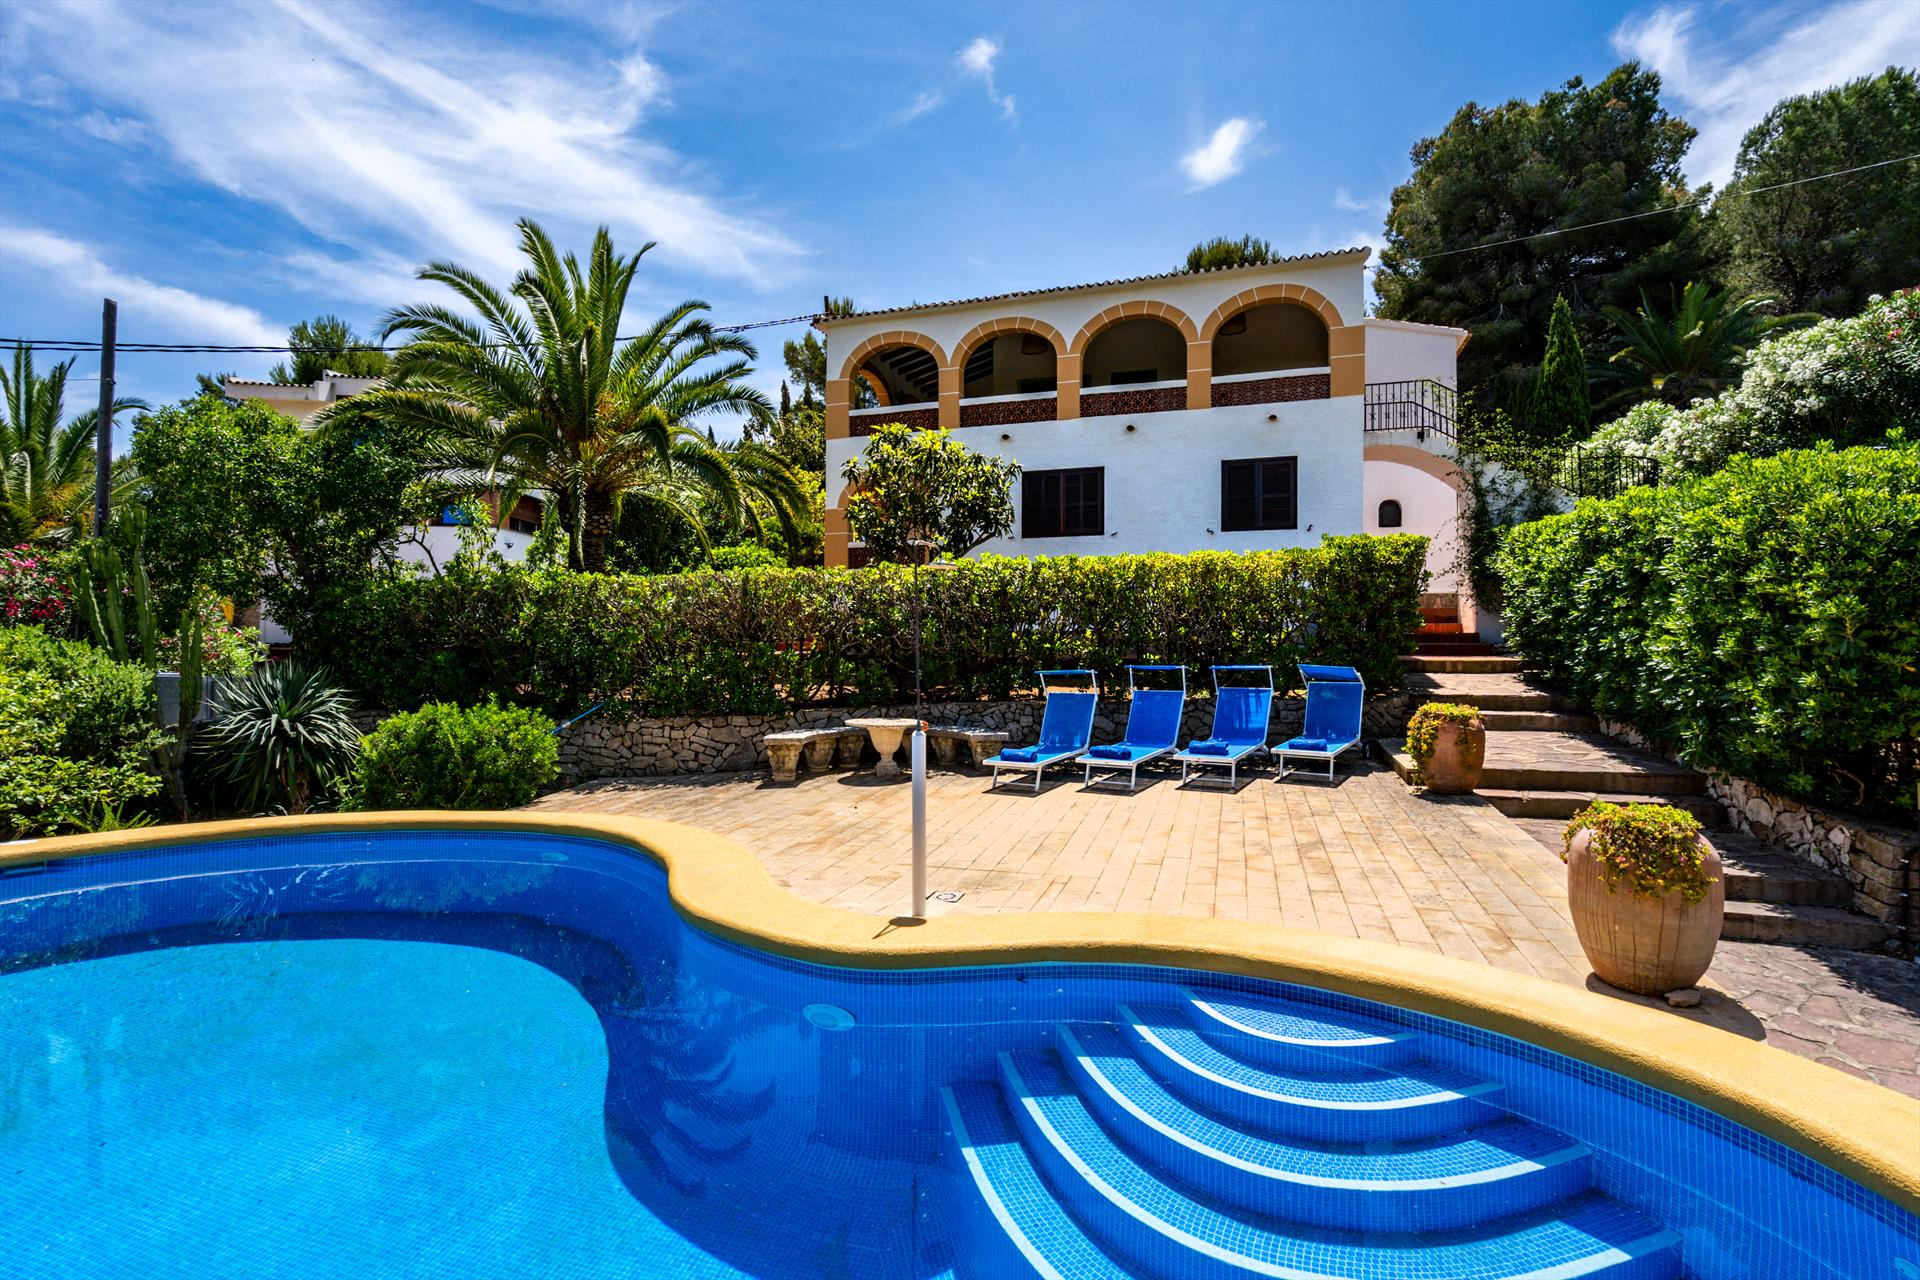 Villa Marta Denia, Rustic and classic villa in Denia, on the Costa Blanca, Spain with private pool for 6-7 persons. The house is situated in.....